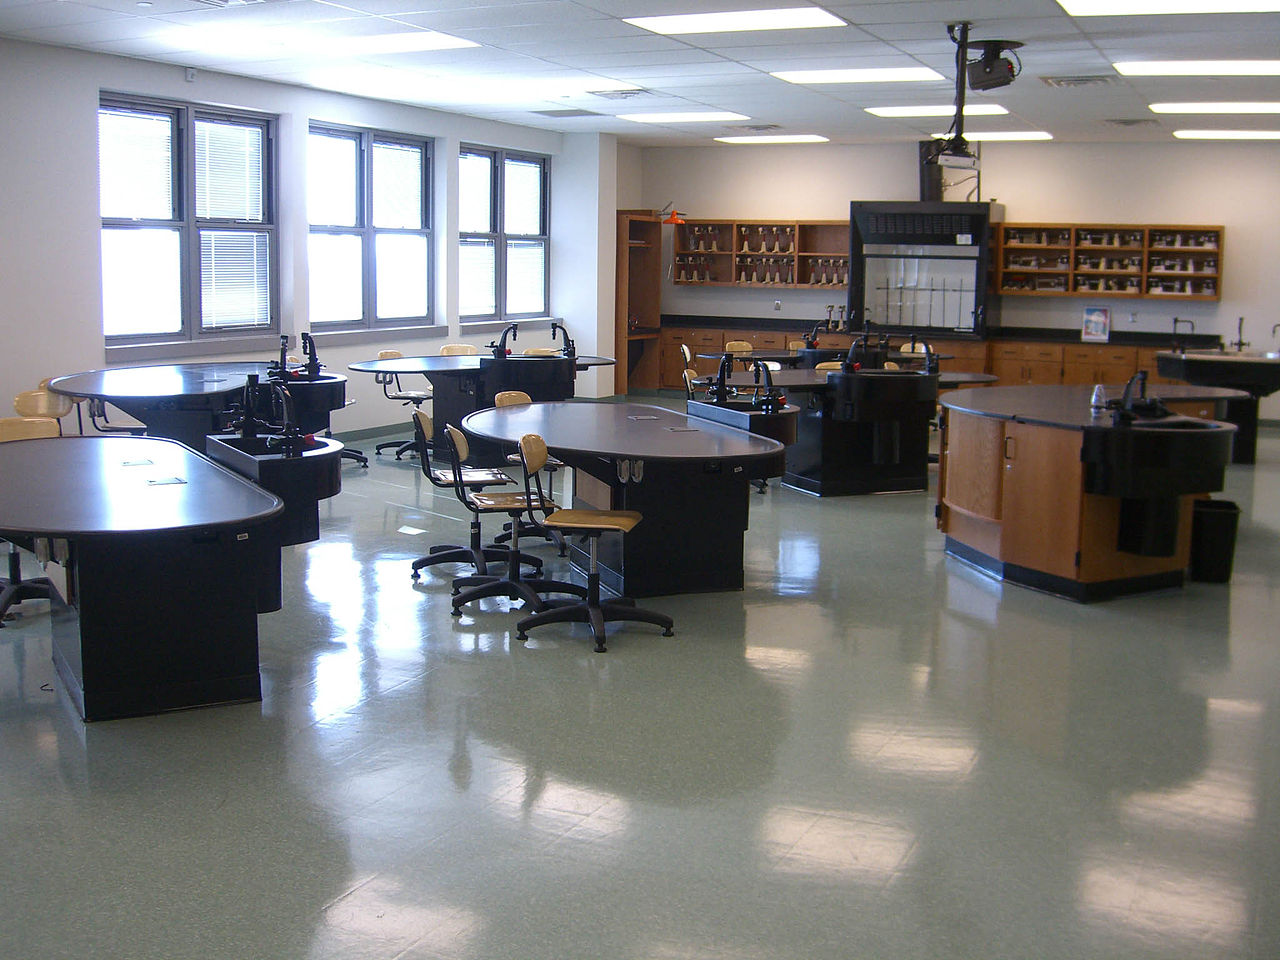 Research On Classroom Design : File uchssciencelab byluiginovi g wikimedia commons